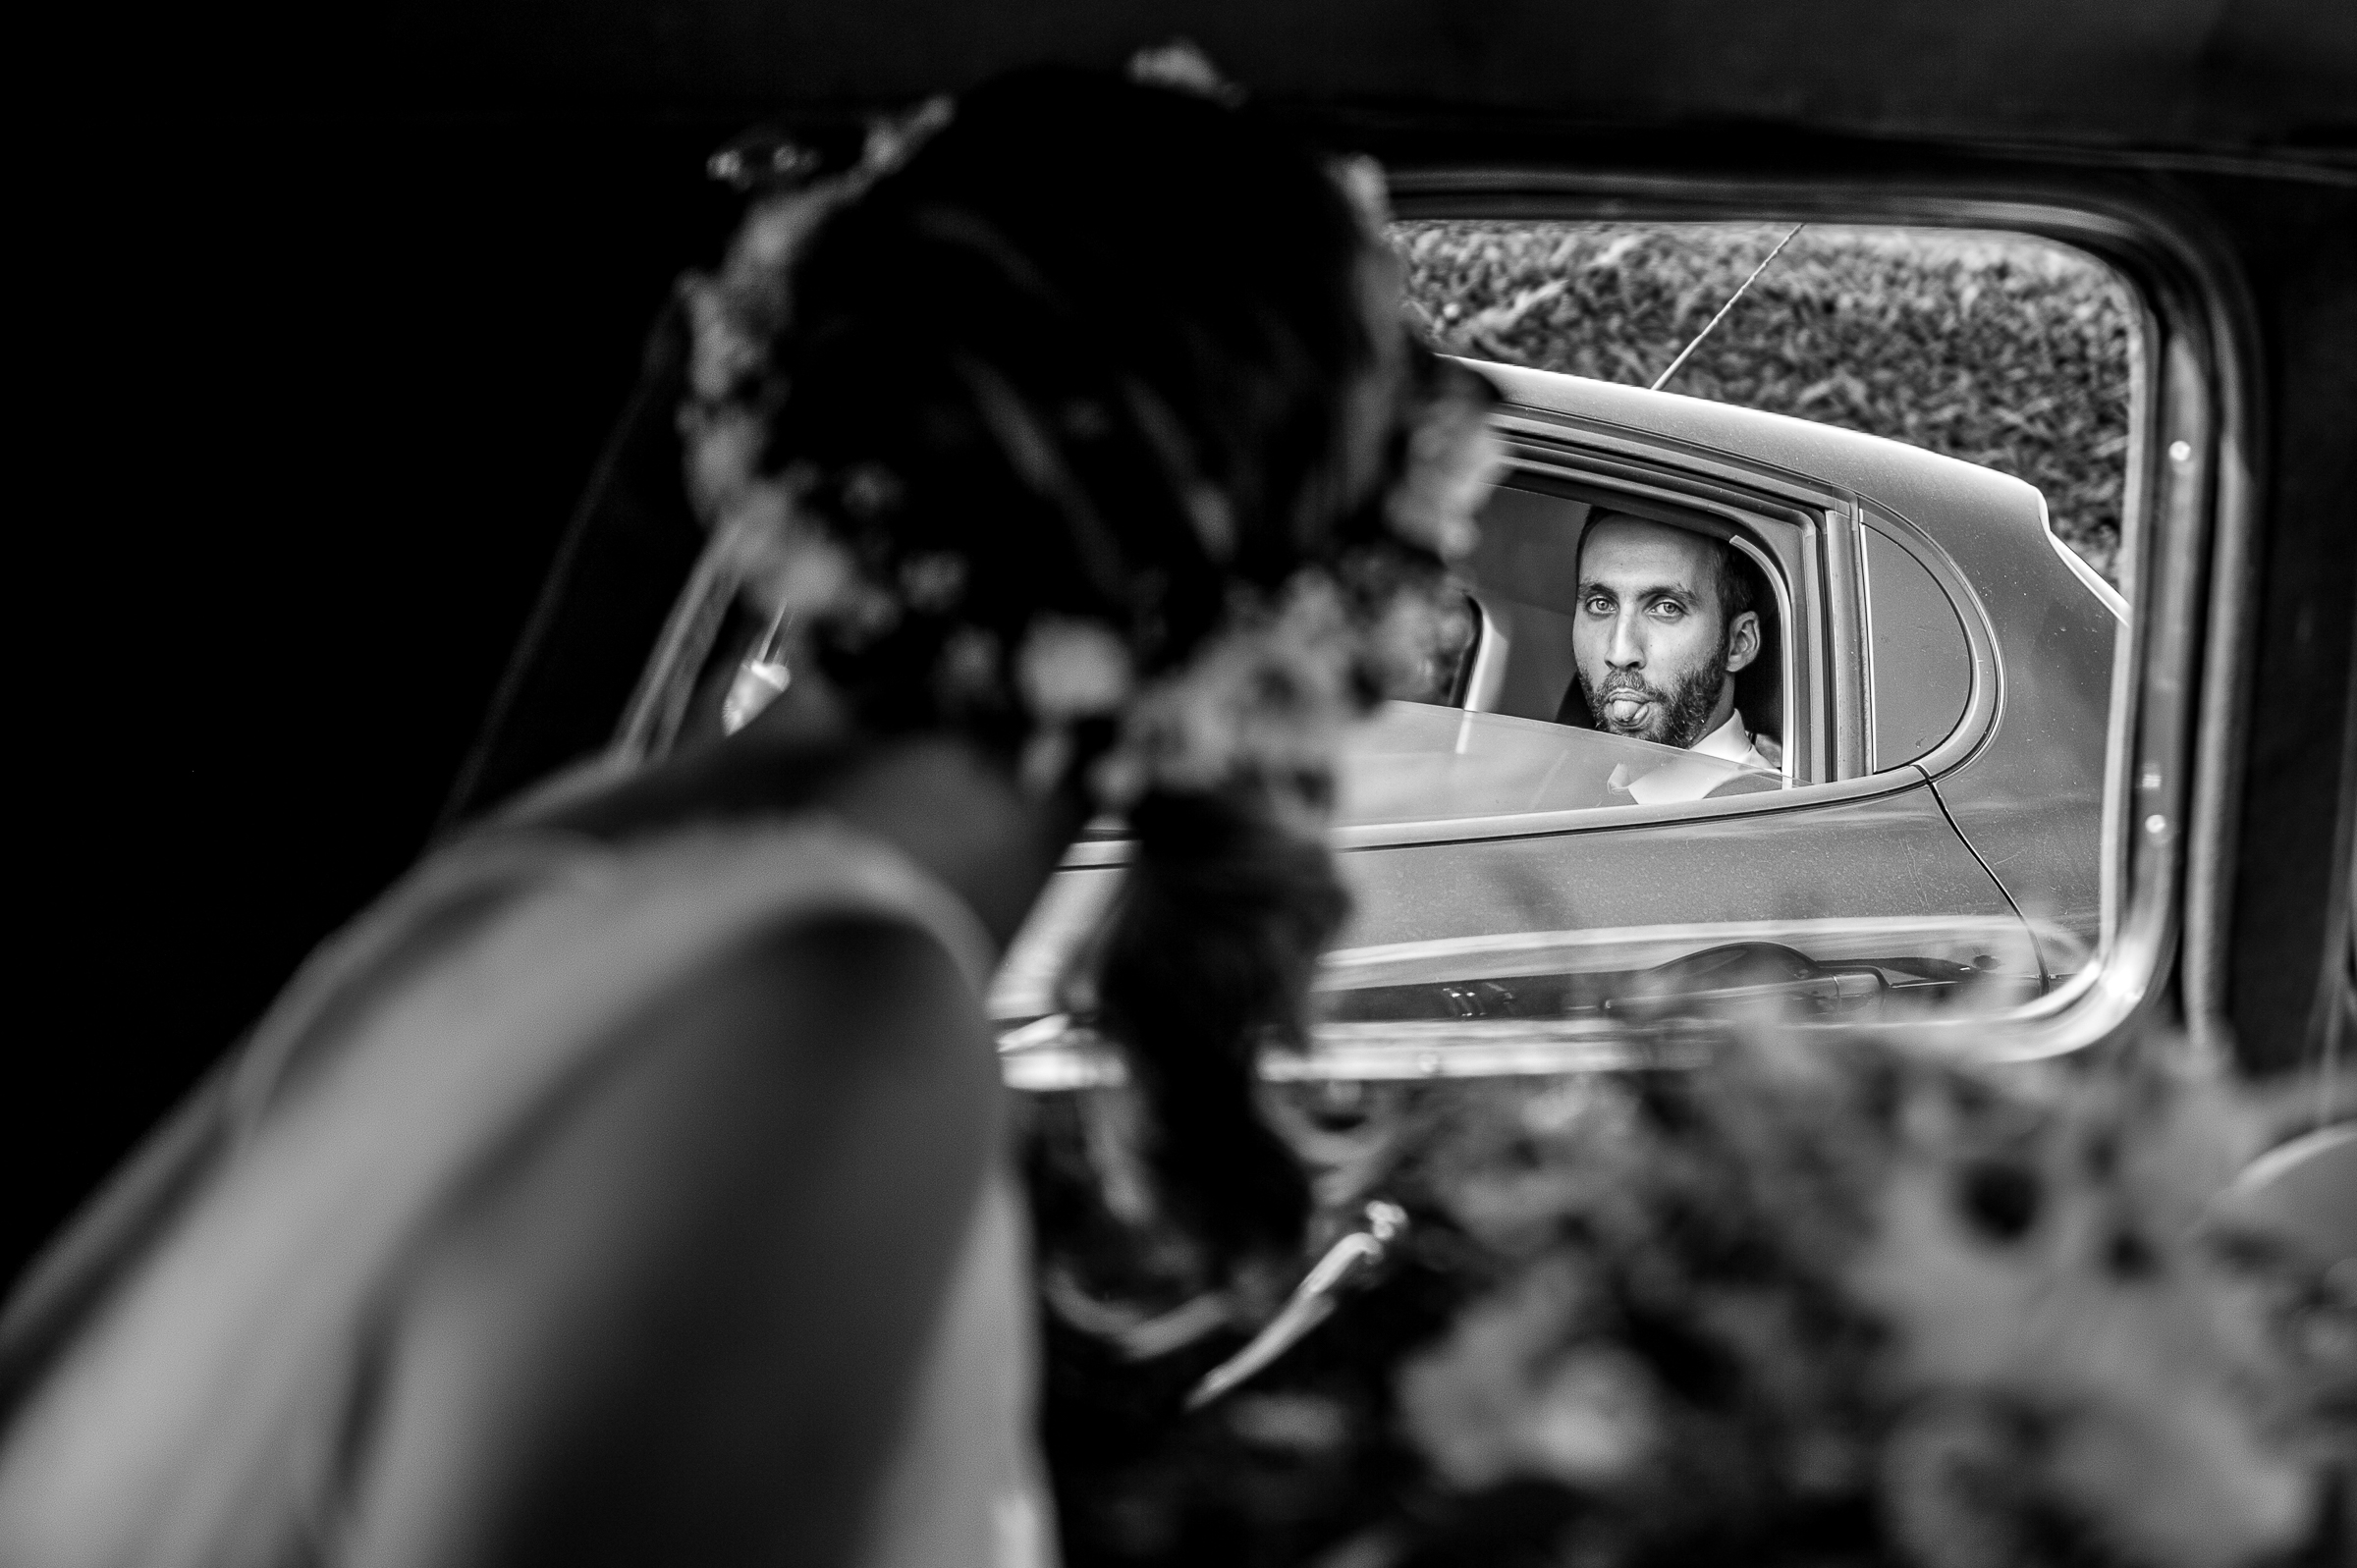 Bride and groom in passing limos - photo by Gaelle Le Berre Photography